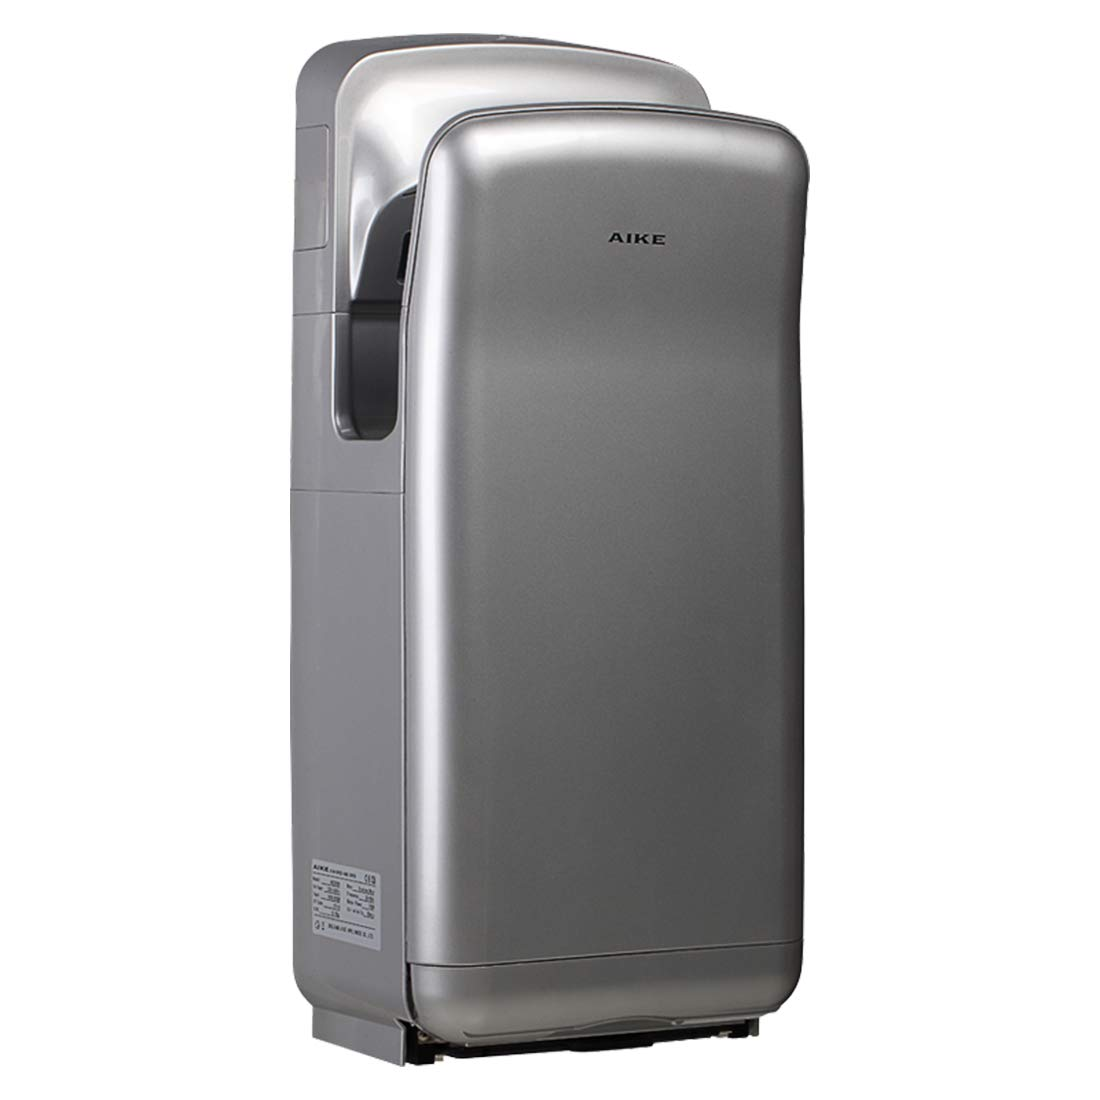 AIKE AK2005H Premium ABS Commercial High Speed Jet Hand Dryer with HEPA Filter 1850W Silver by AIKE